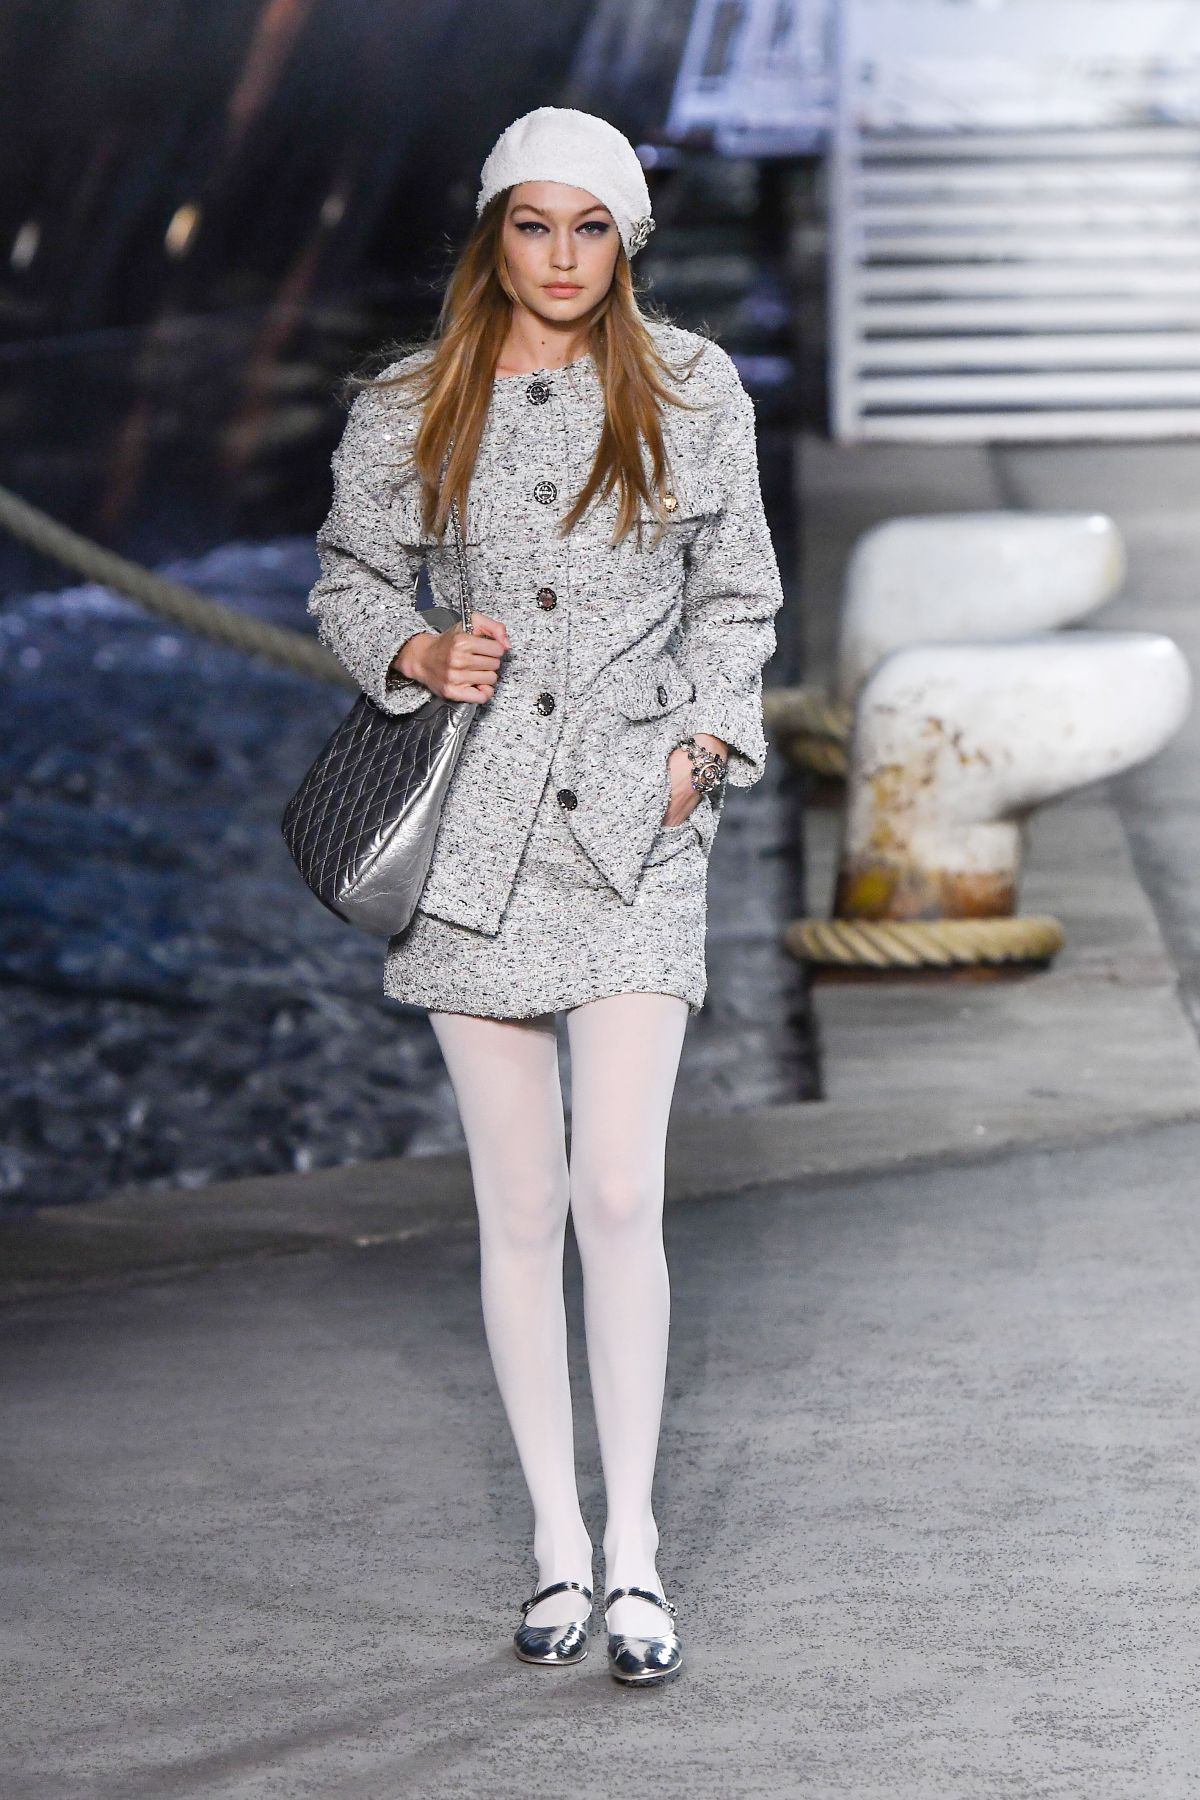 GIGI HADID at Chanel Cruise 2018/2019 Collection Launch in ...